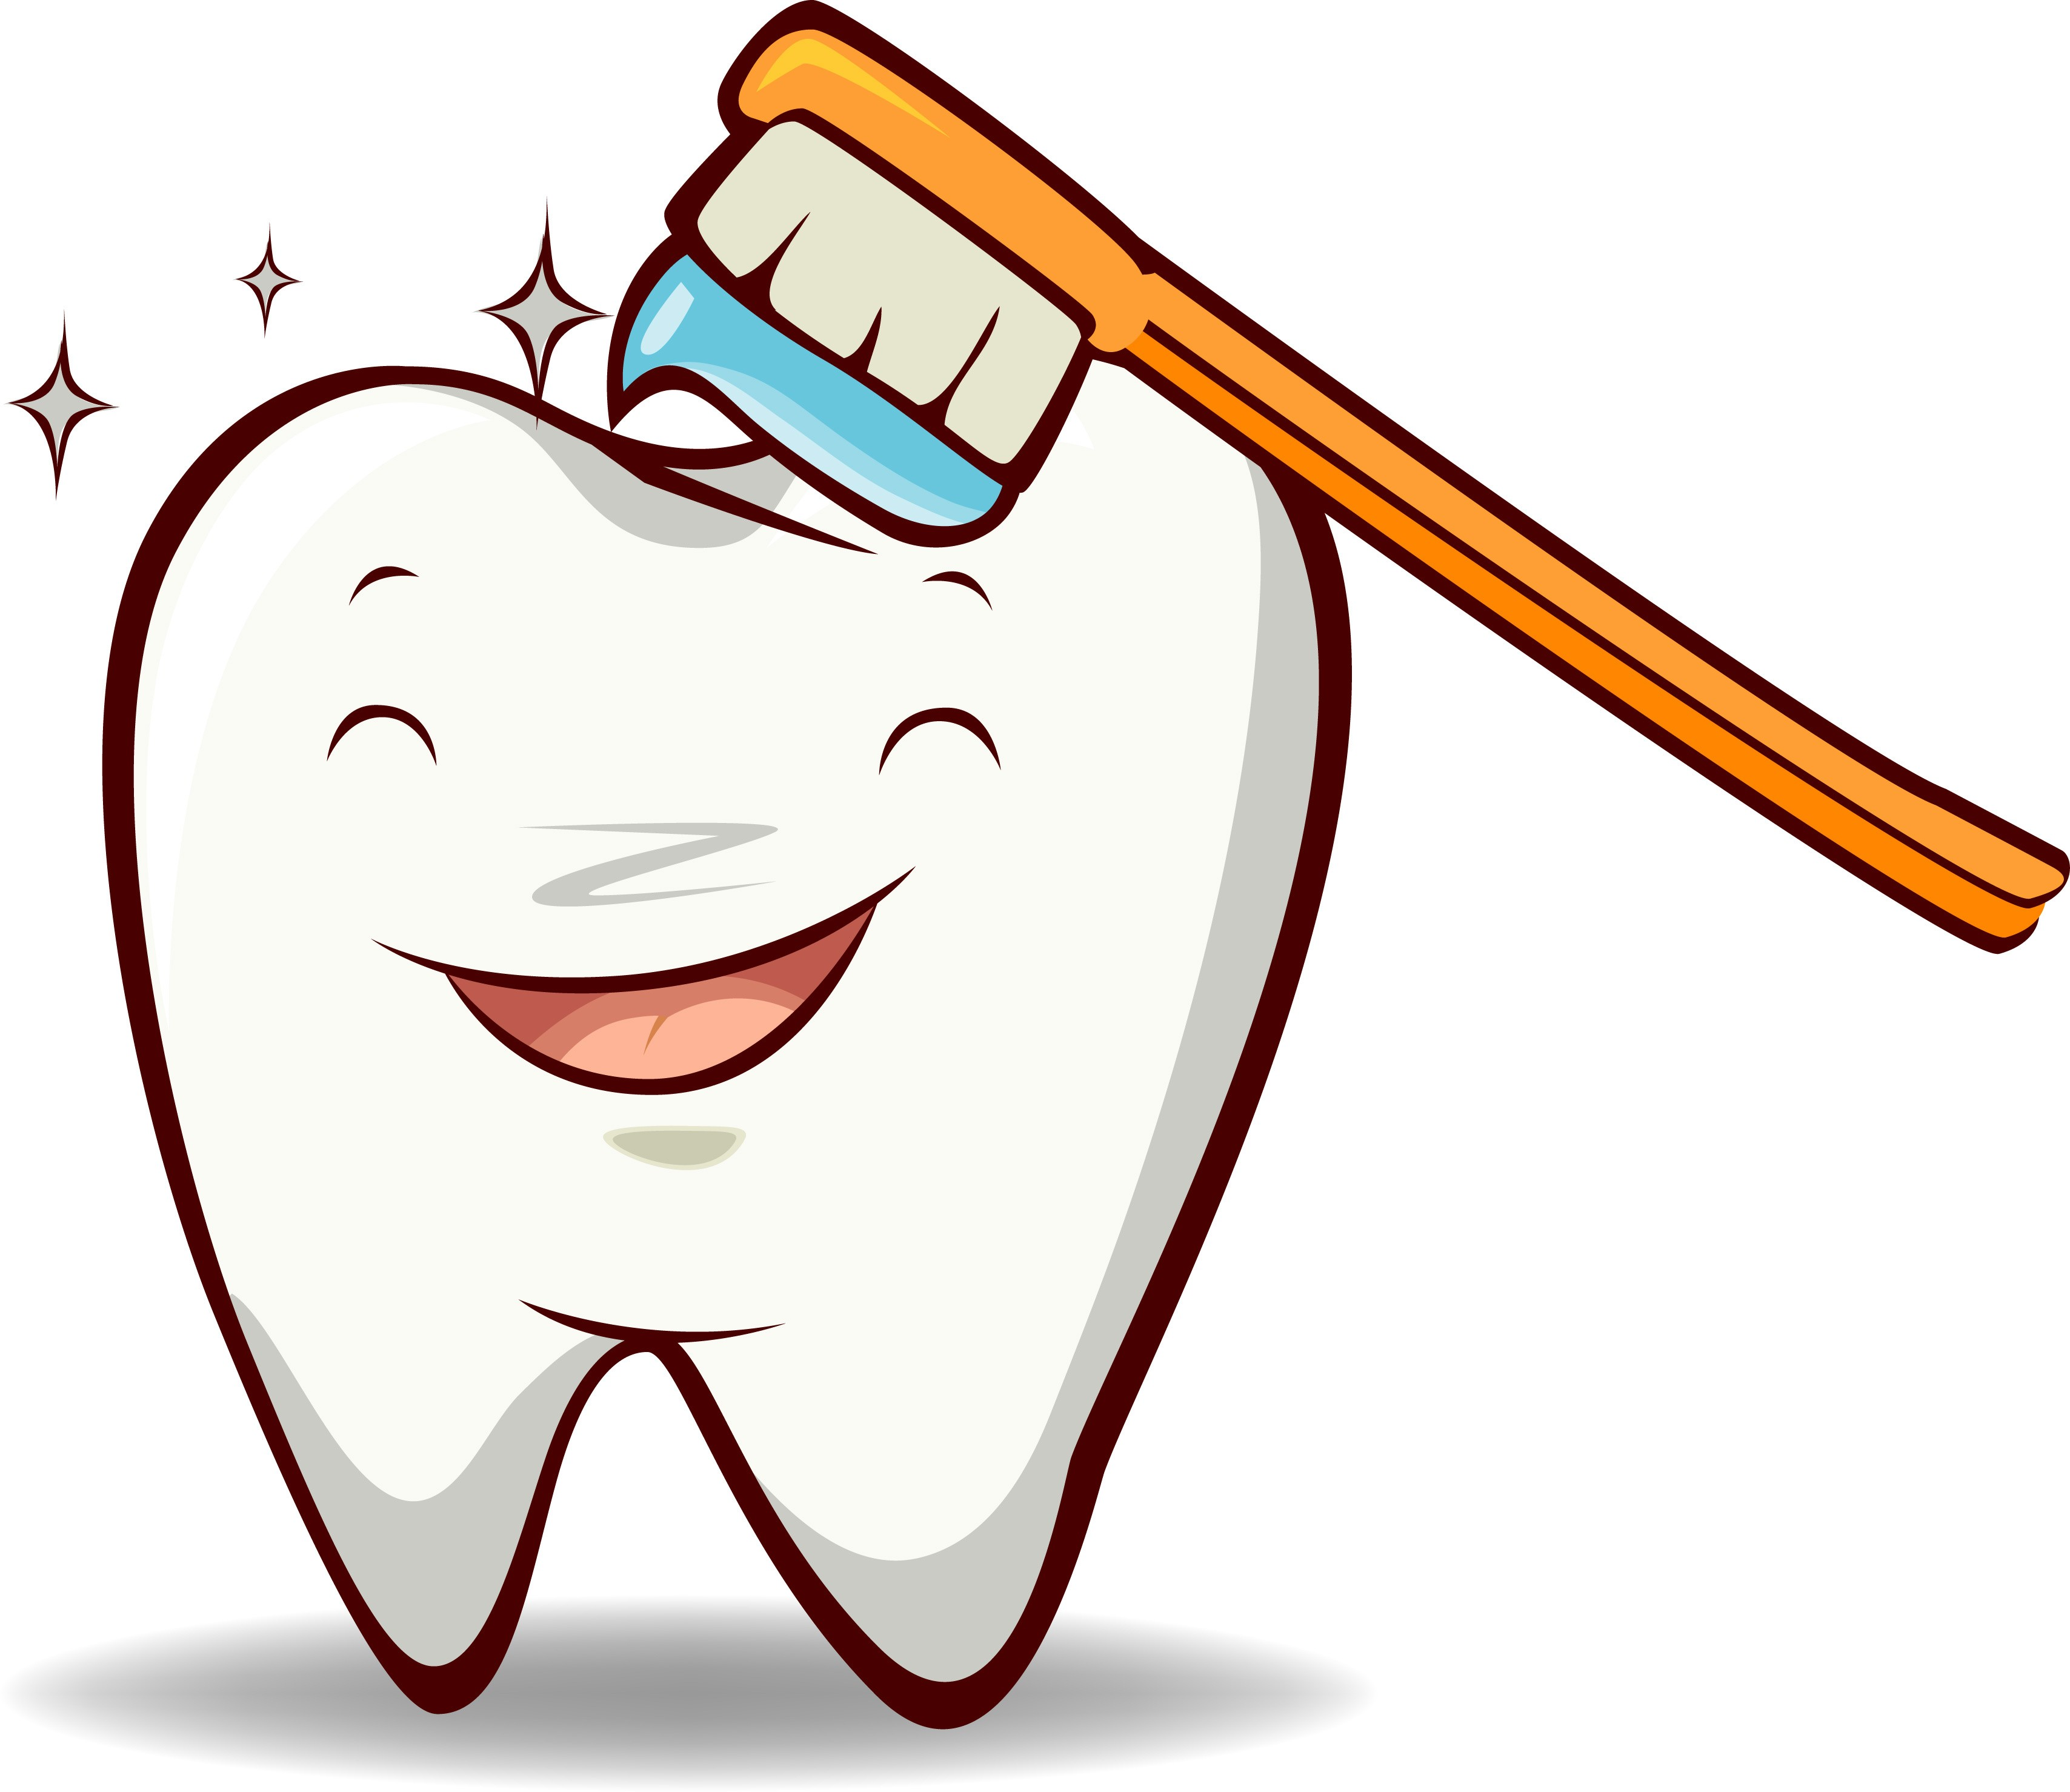 Tooth clip art free clipart images.